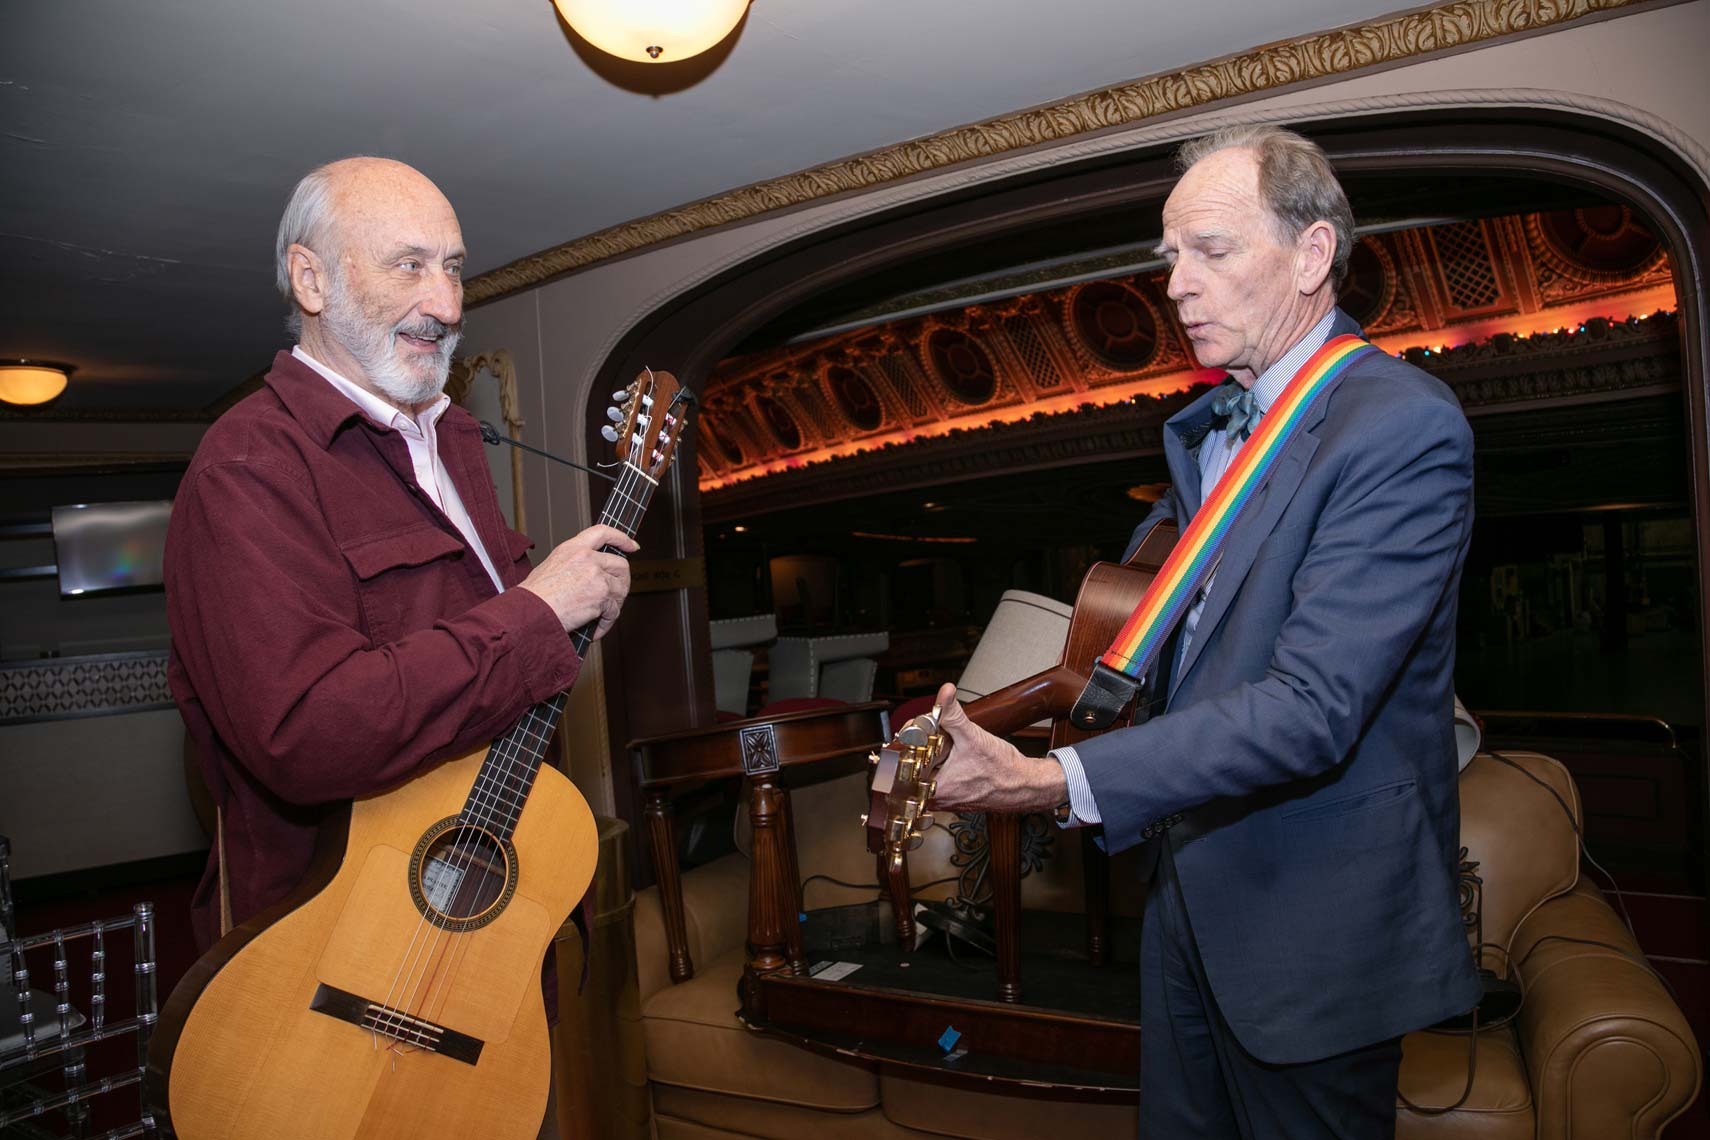 Noel Paul Stookey and Livingston Taylor warm up before the gala